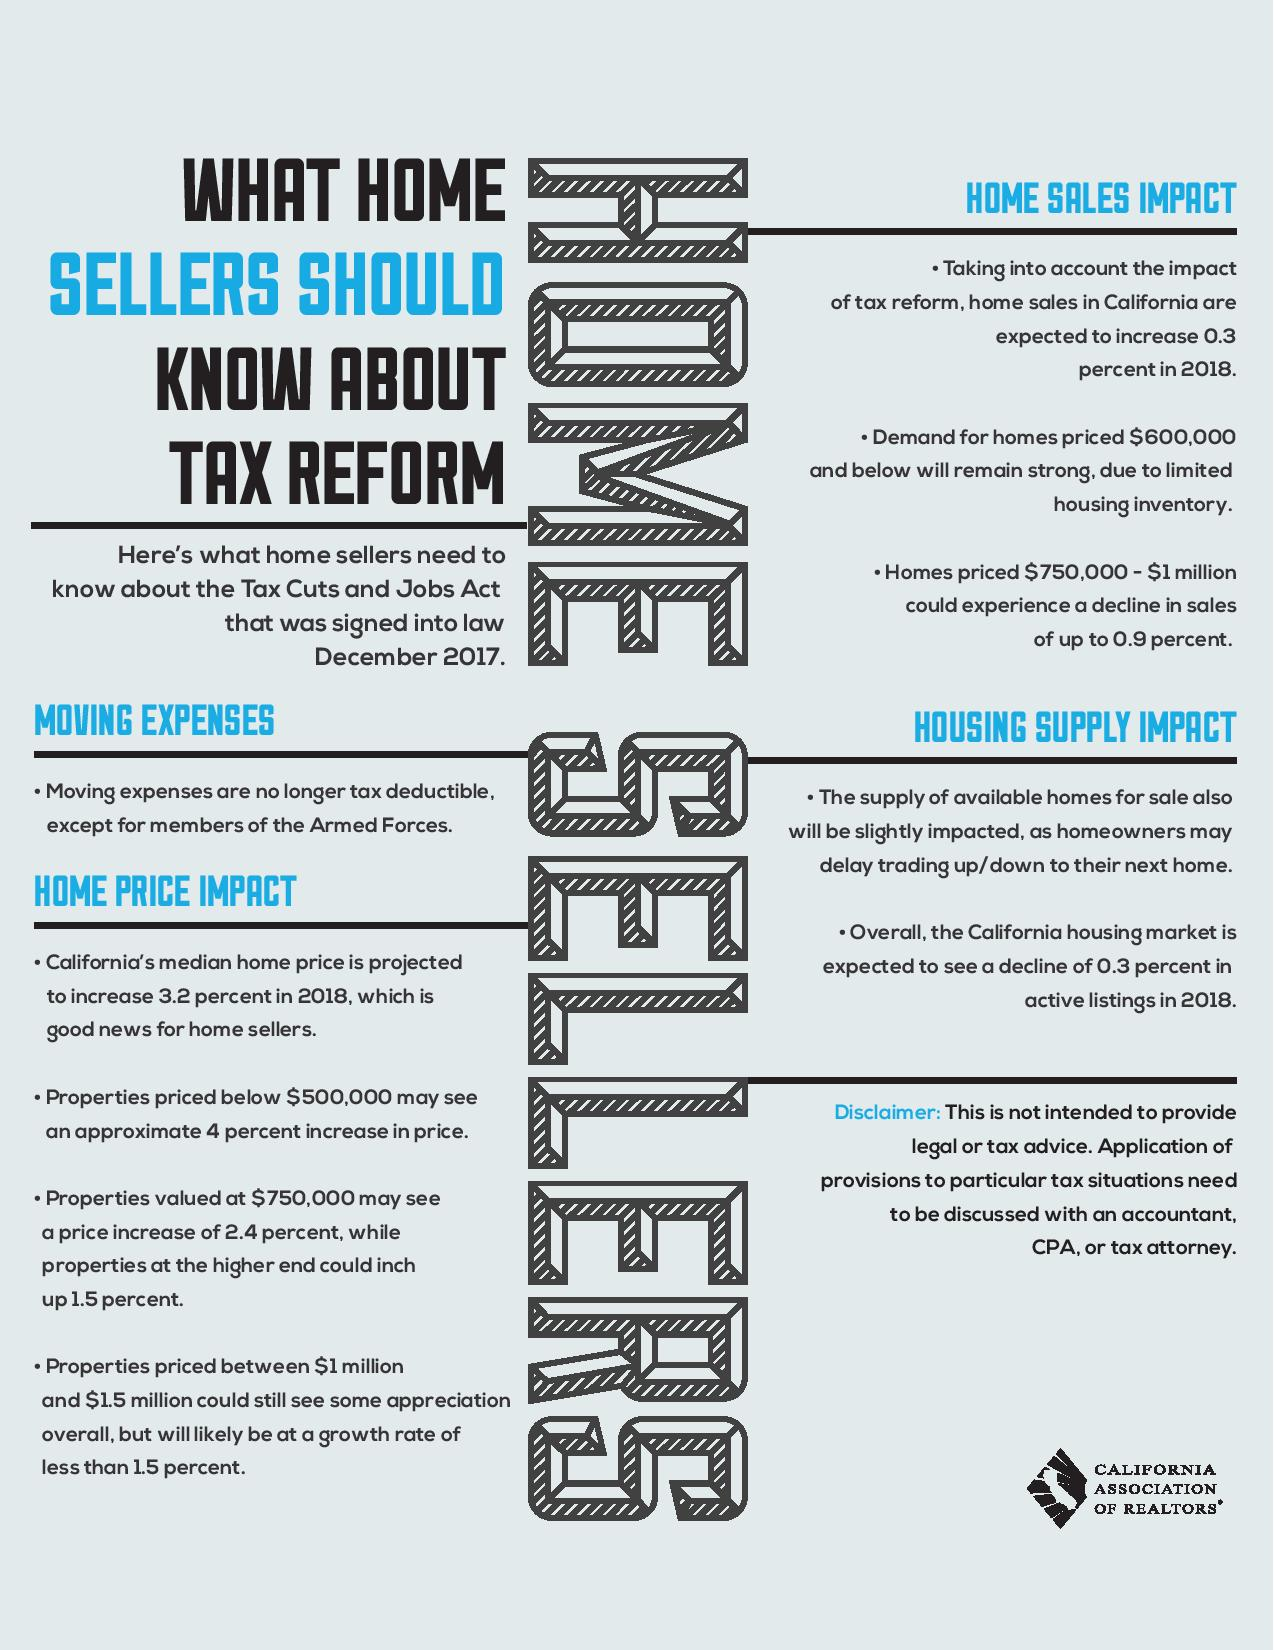 Home-Seller-page-001